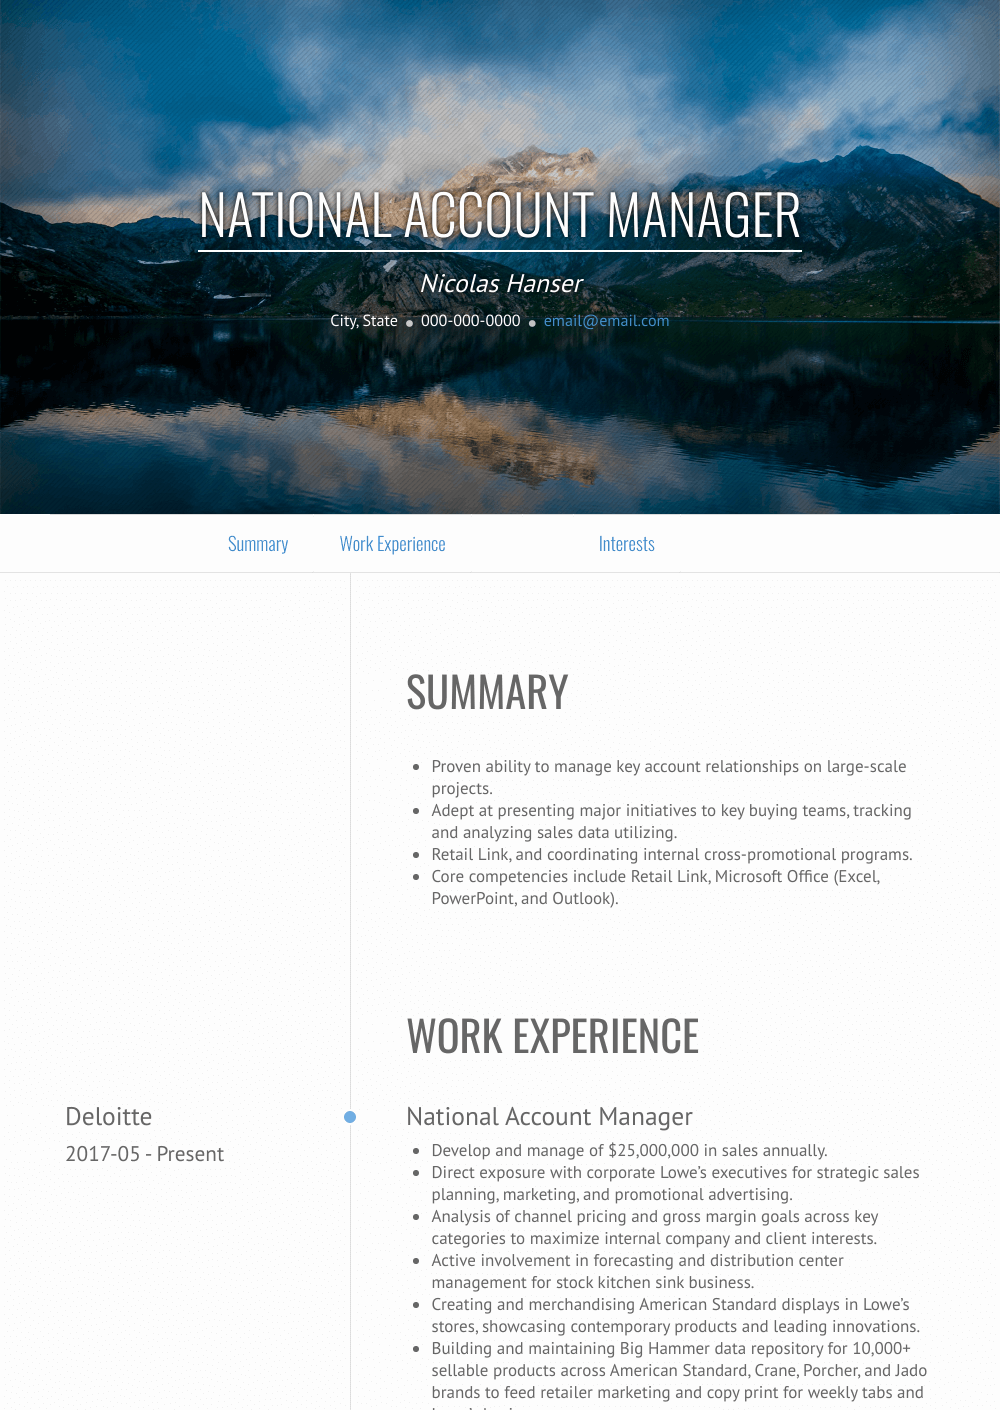 National Account Manager Resume Sample